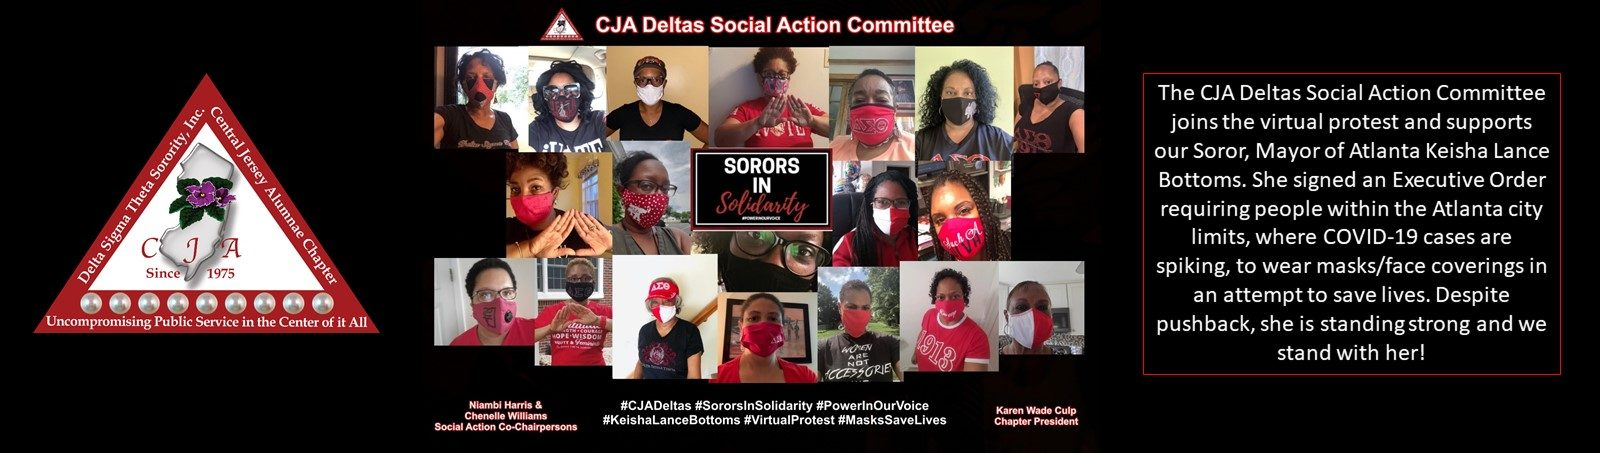 Sorors in Solidarity - pictures of Sorors wearing masks